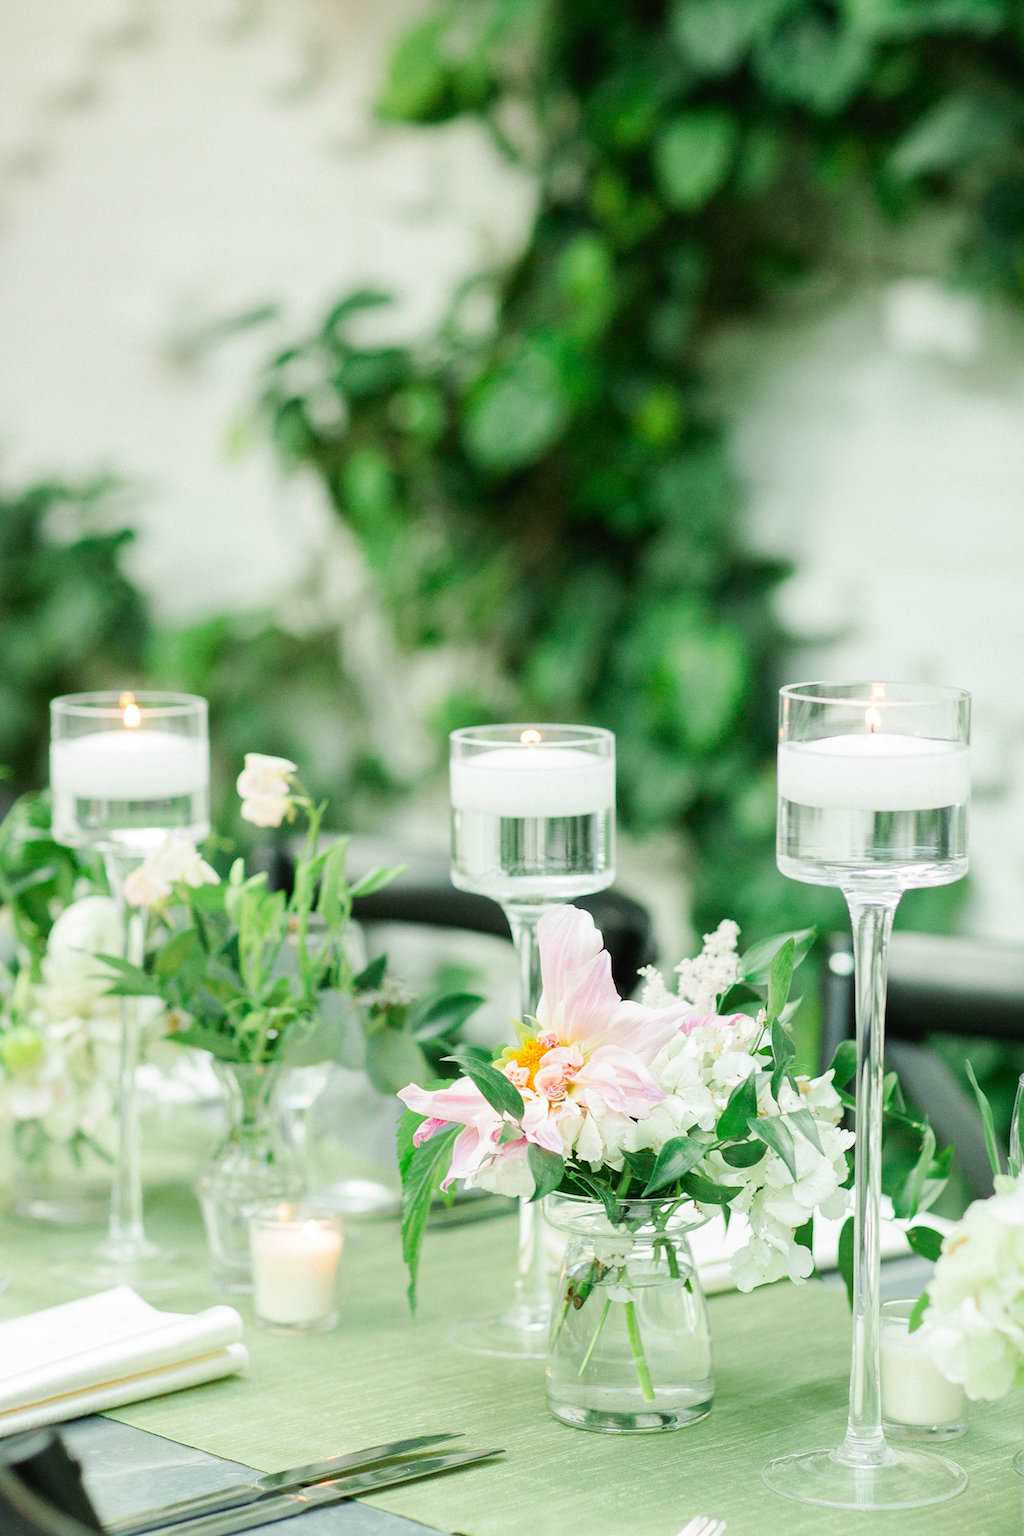 Indoor Ivory Garden Wedding Reception Industrial Metal Feasting Table with Low Pink and White Floral with Greenery Centerpieces in Glass Jars, and Floating Votive Candles in Tall Glass Holders   Downtown Tampa Wedding Venue The Oxford Exchange